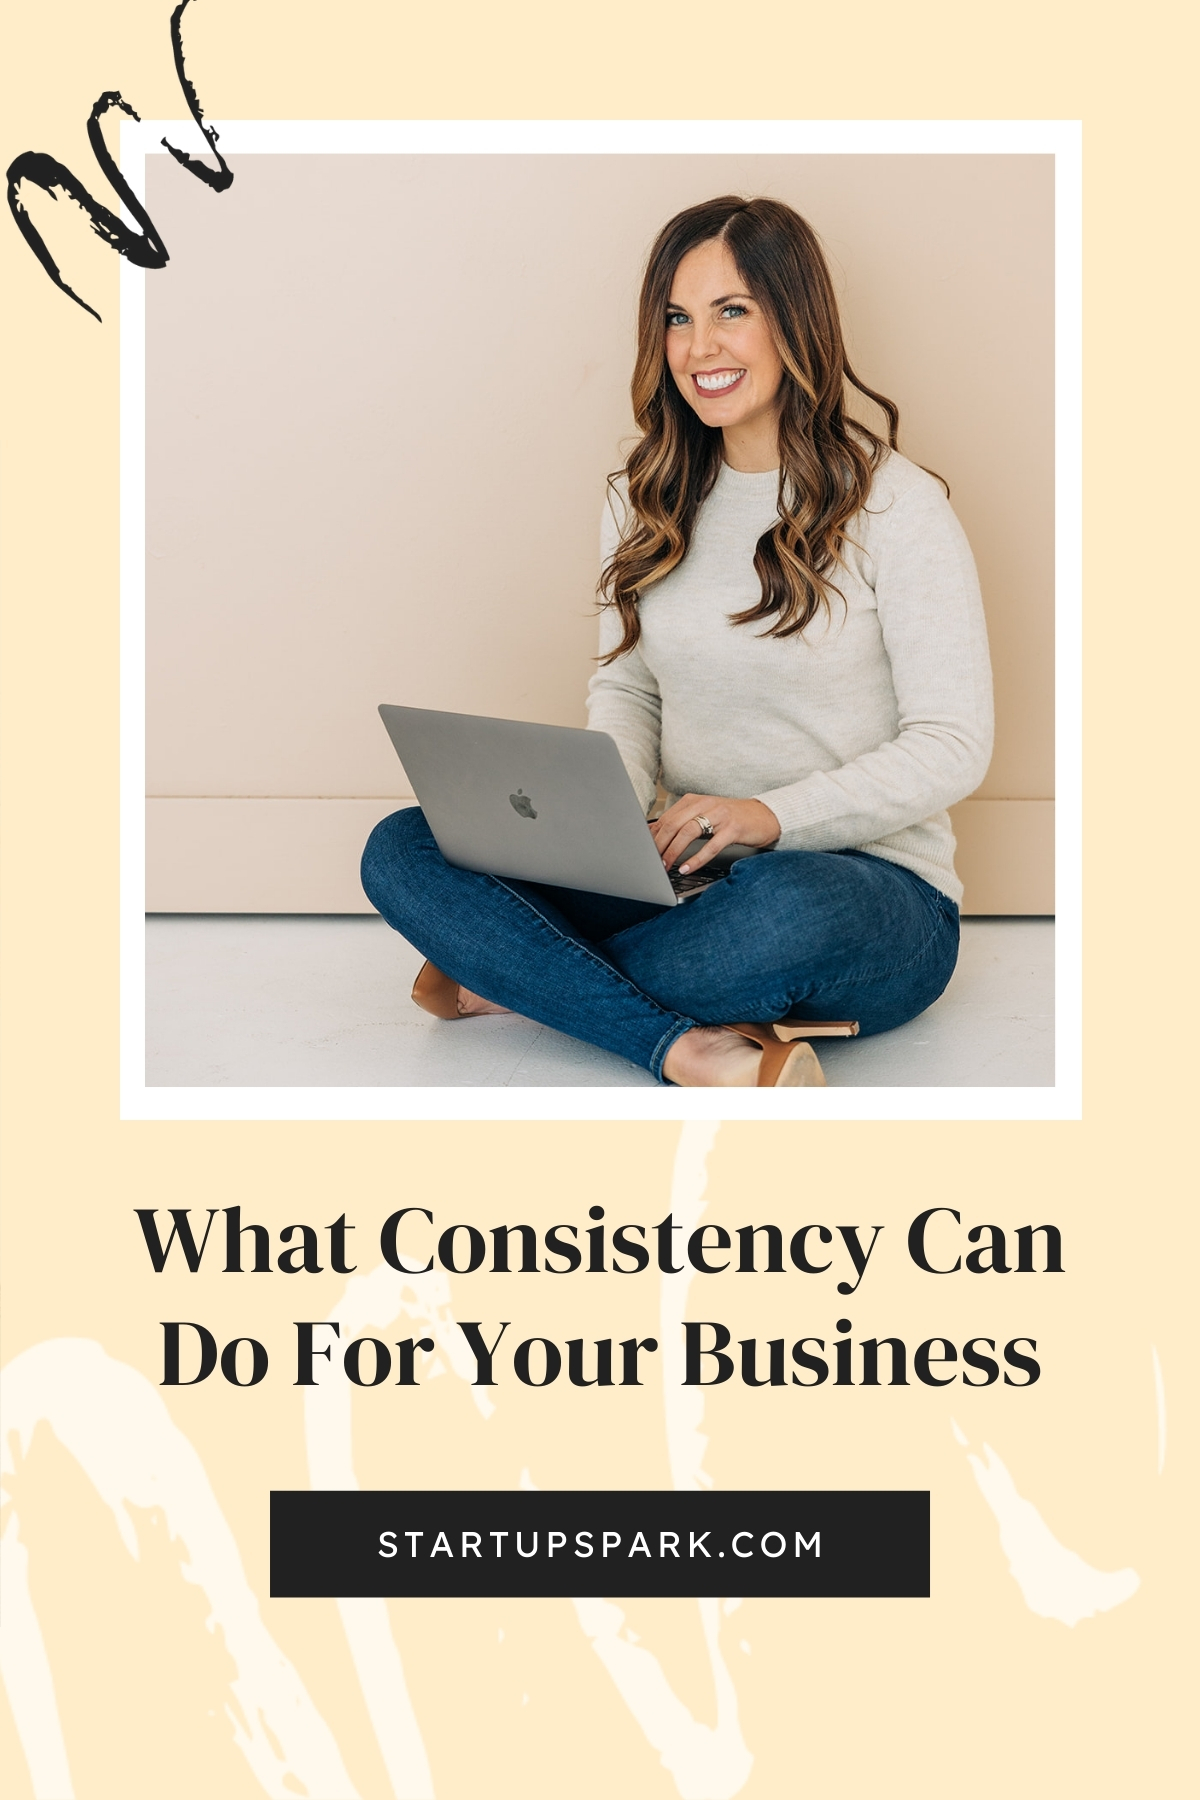 What Consistency Can Do For Your Business